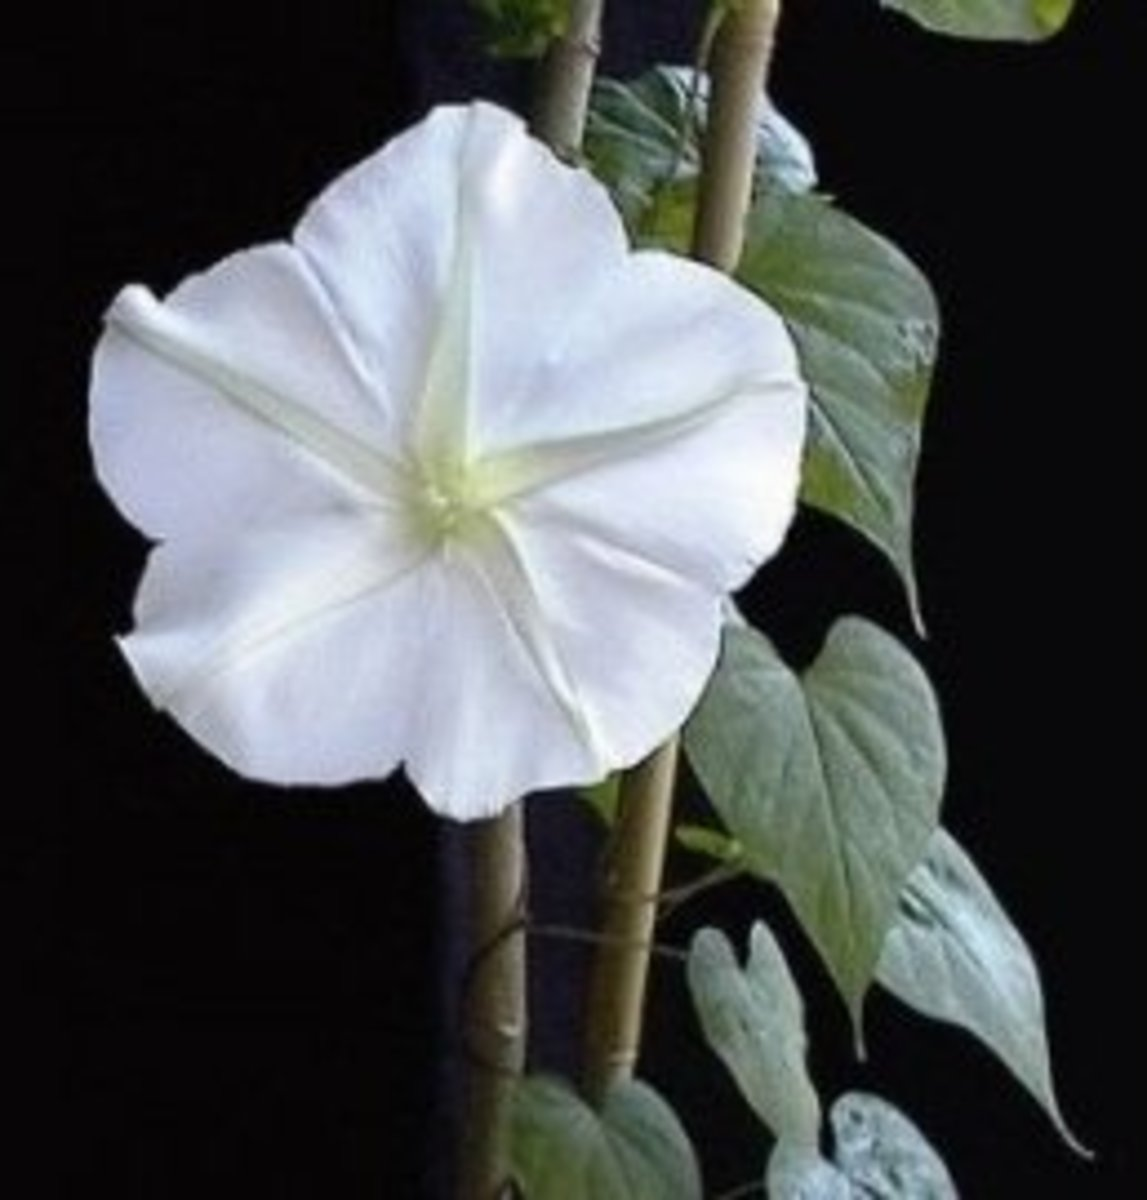 Moonflower twining round up a stick